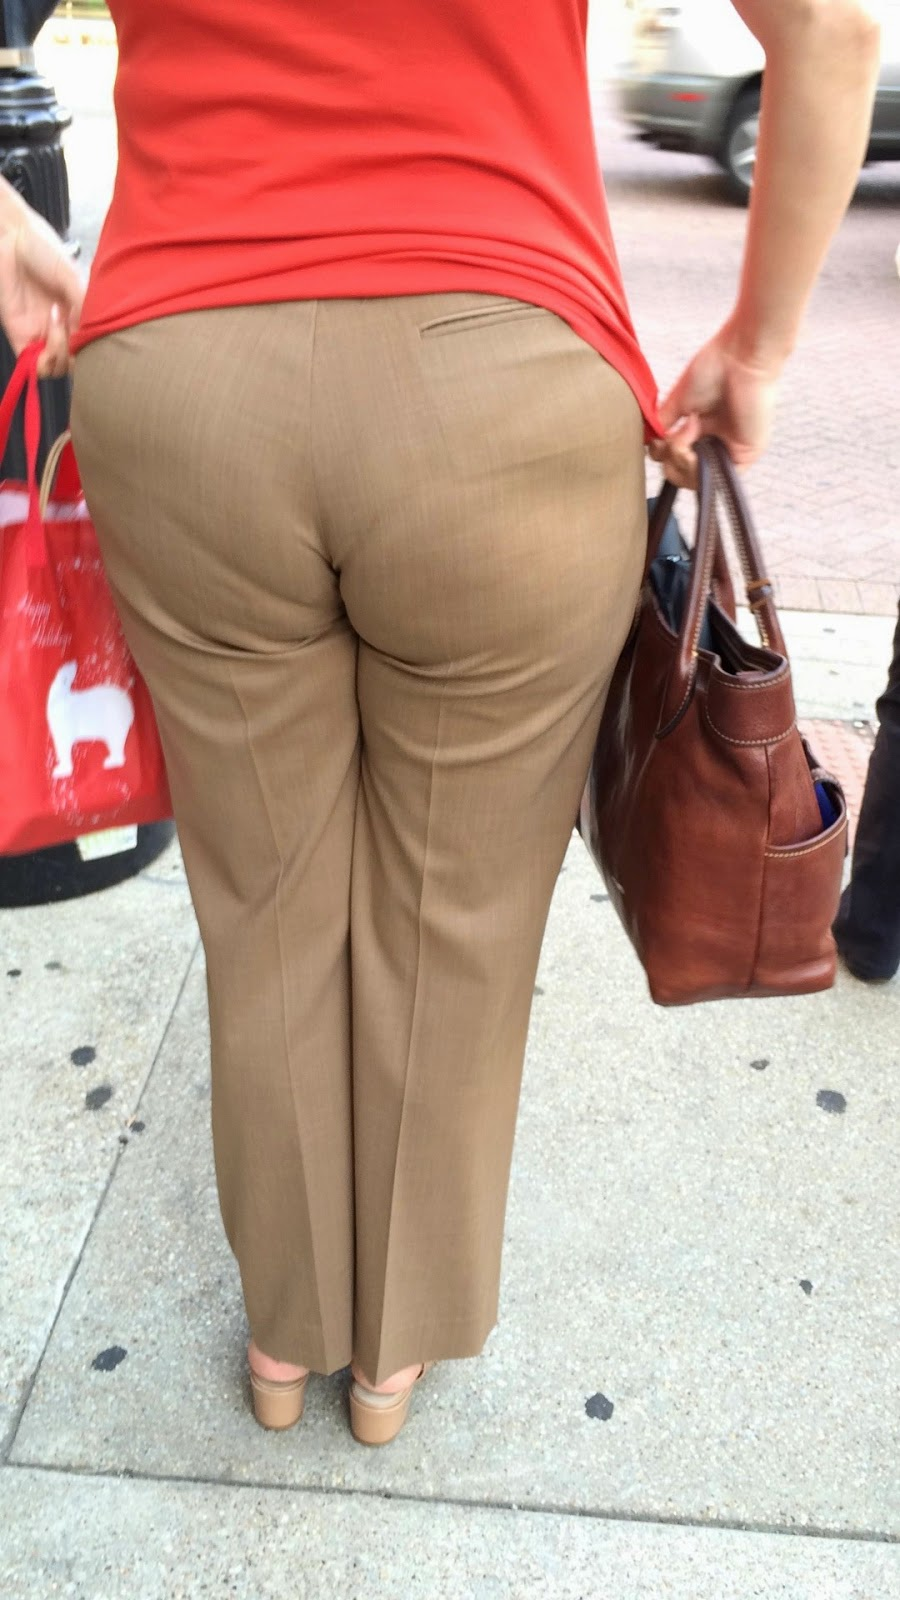 Women with big round butts